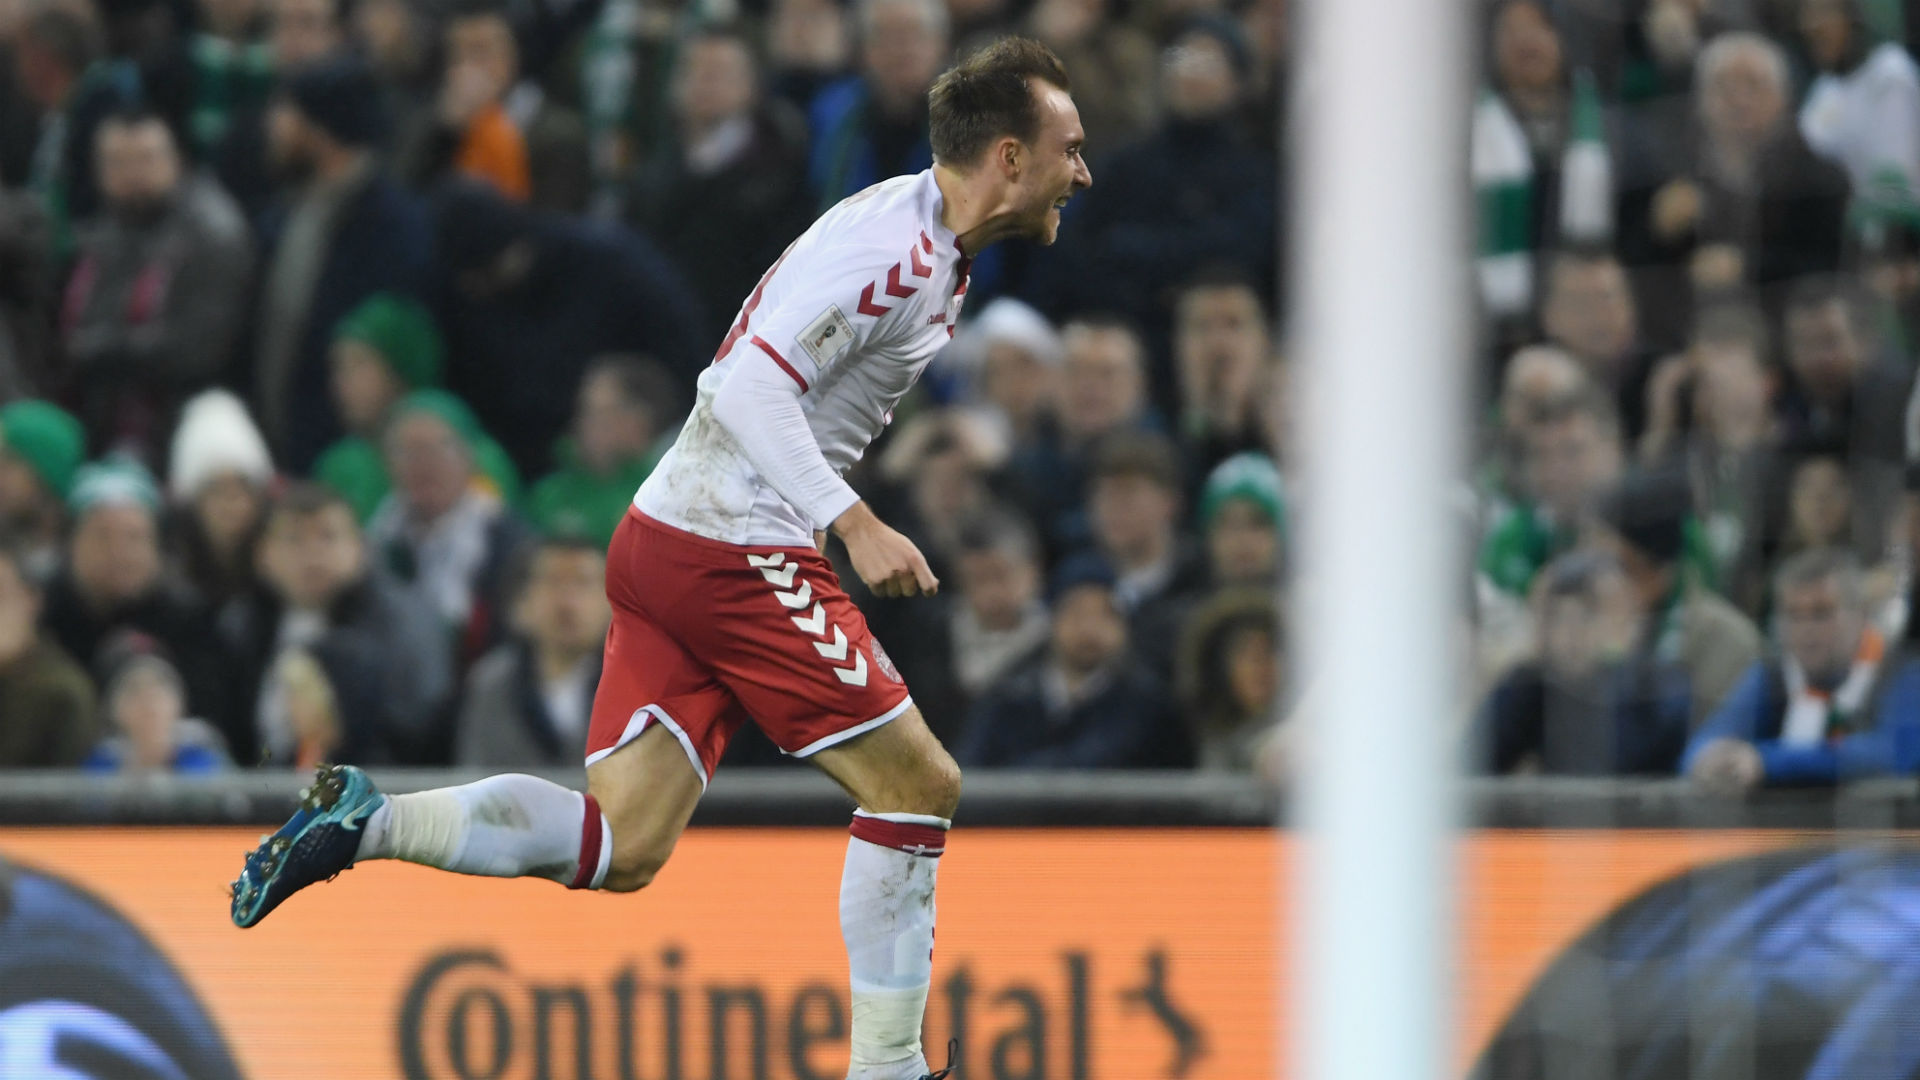 Martin O'Neill commends players after Denmark defeat